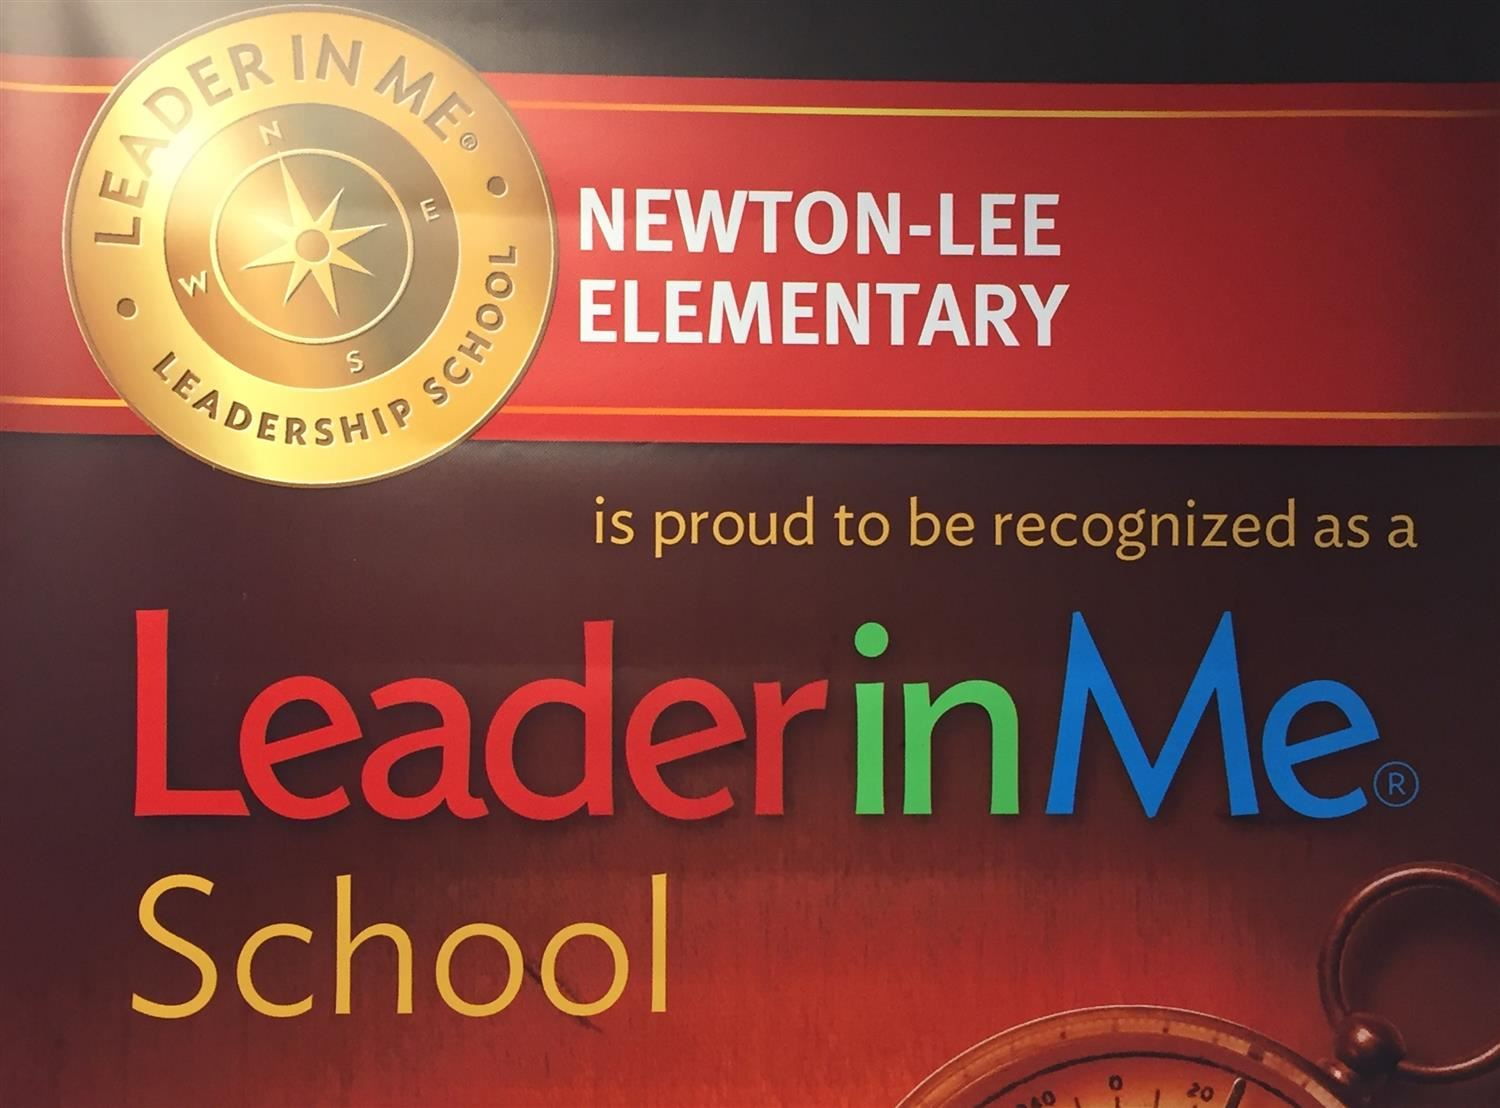 NLE is Proud to be a Leader in Me School!